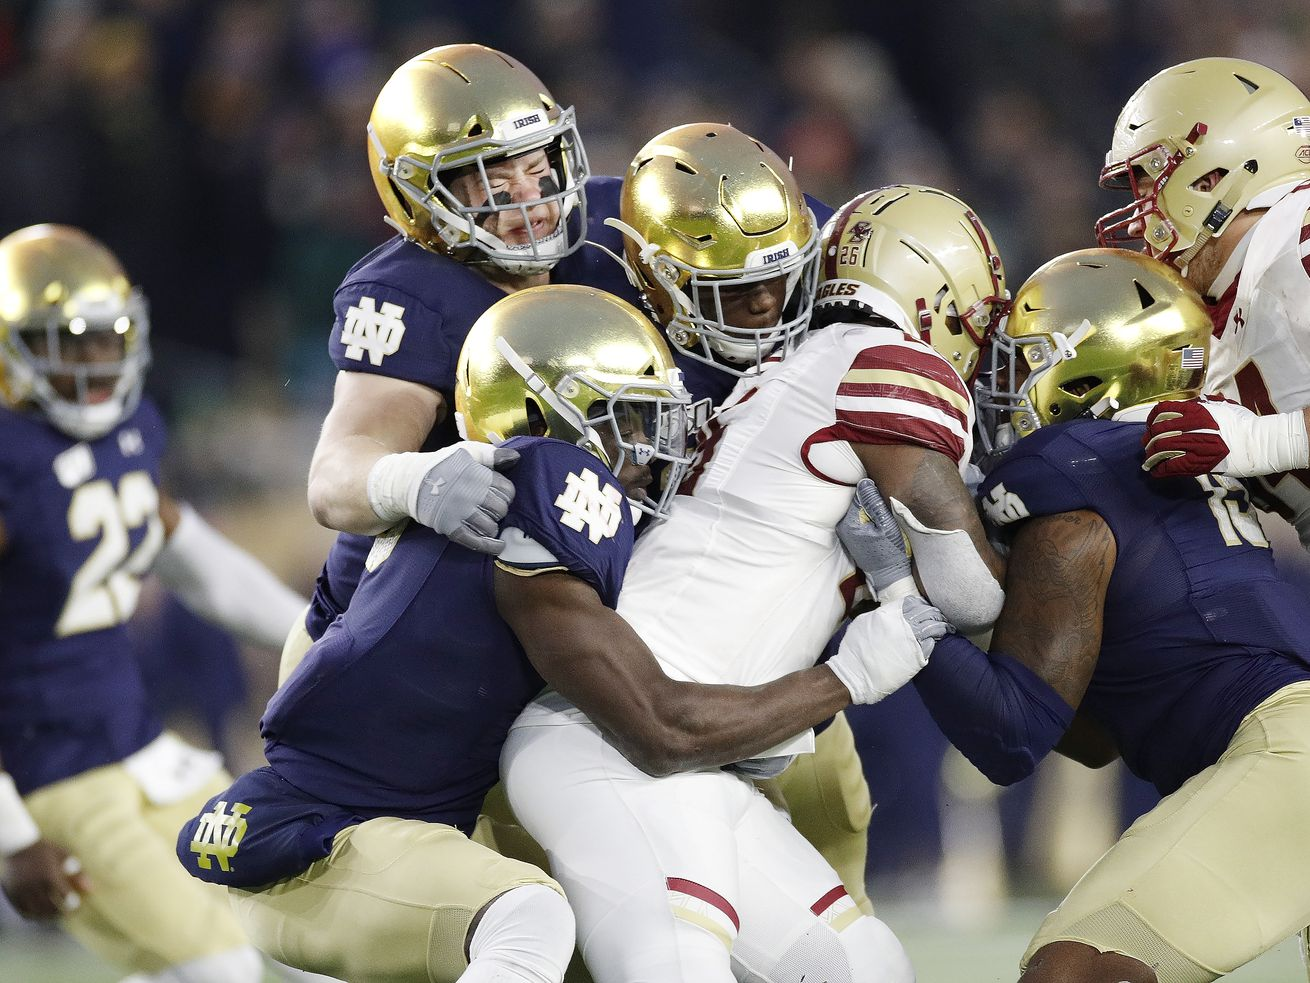 Notre Dame won't offer single-game football tickets